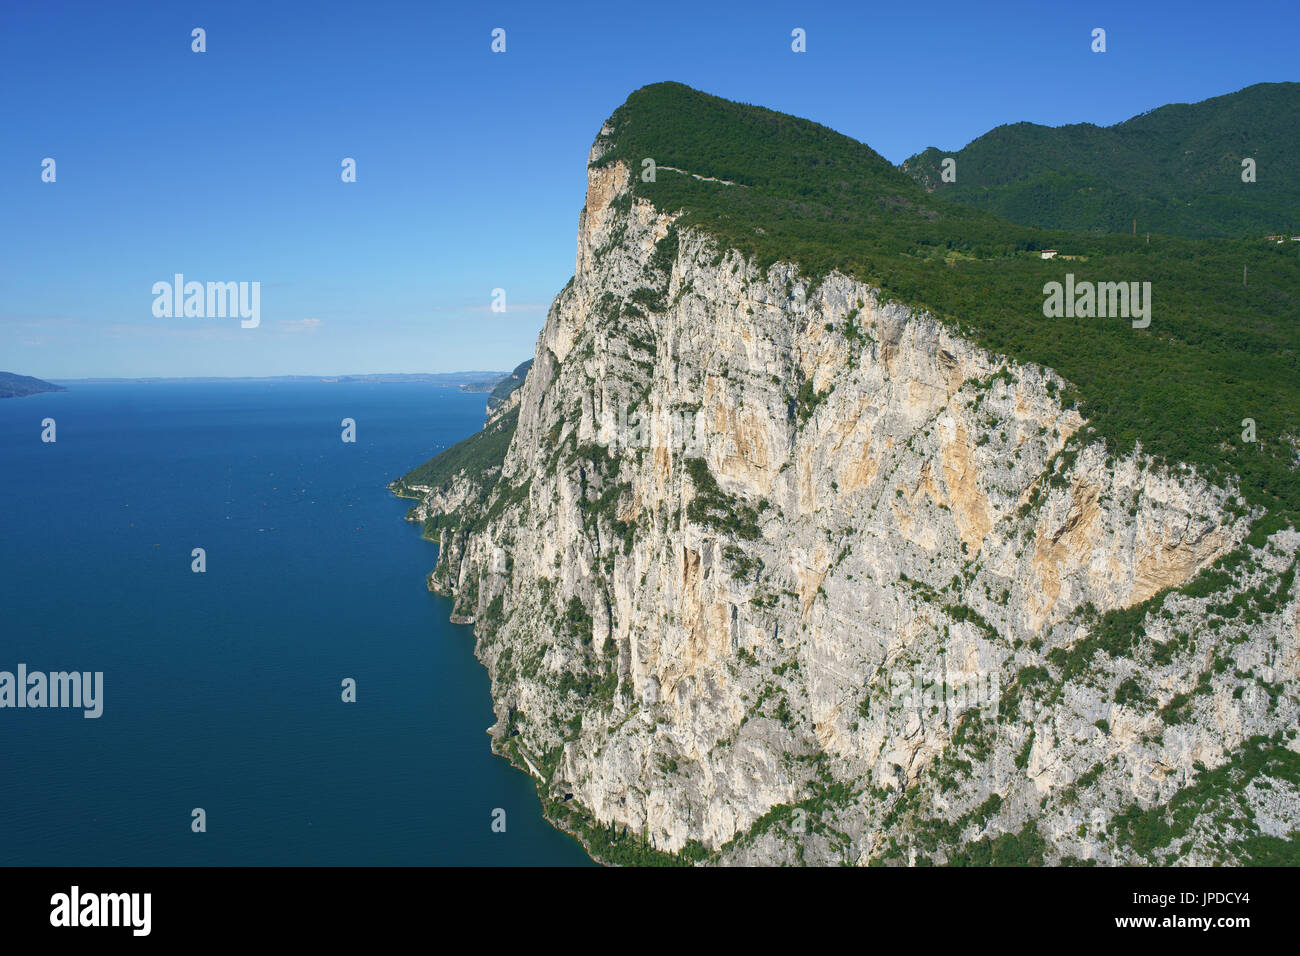 MONTE CASTELLO (779m amsl) WITH ITS GENEROUS VERTICAL DROP OVER LAKE GARDA (65m amsl) (aerial view). Tignale, Lombardy, Italy. - Stock Image